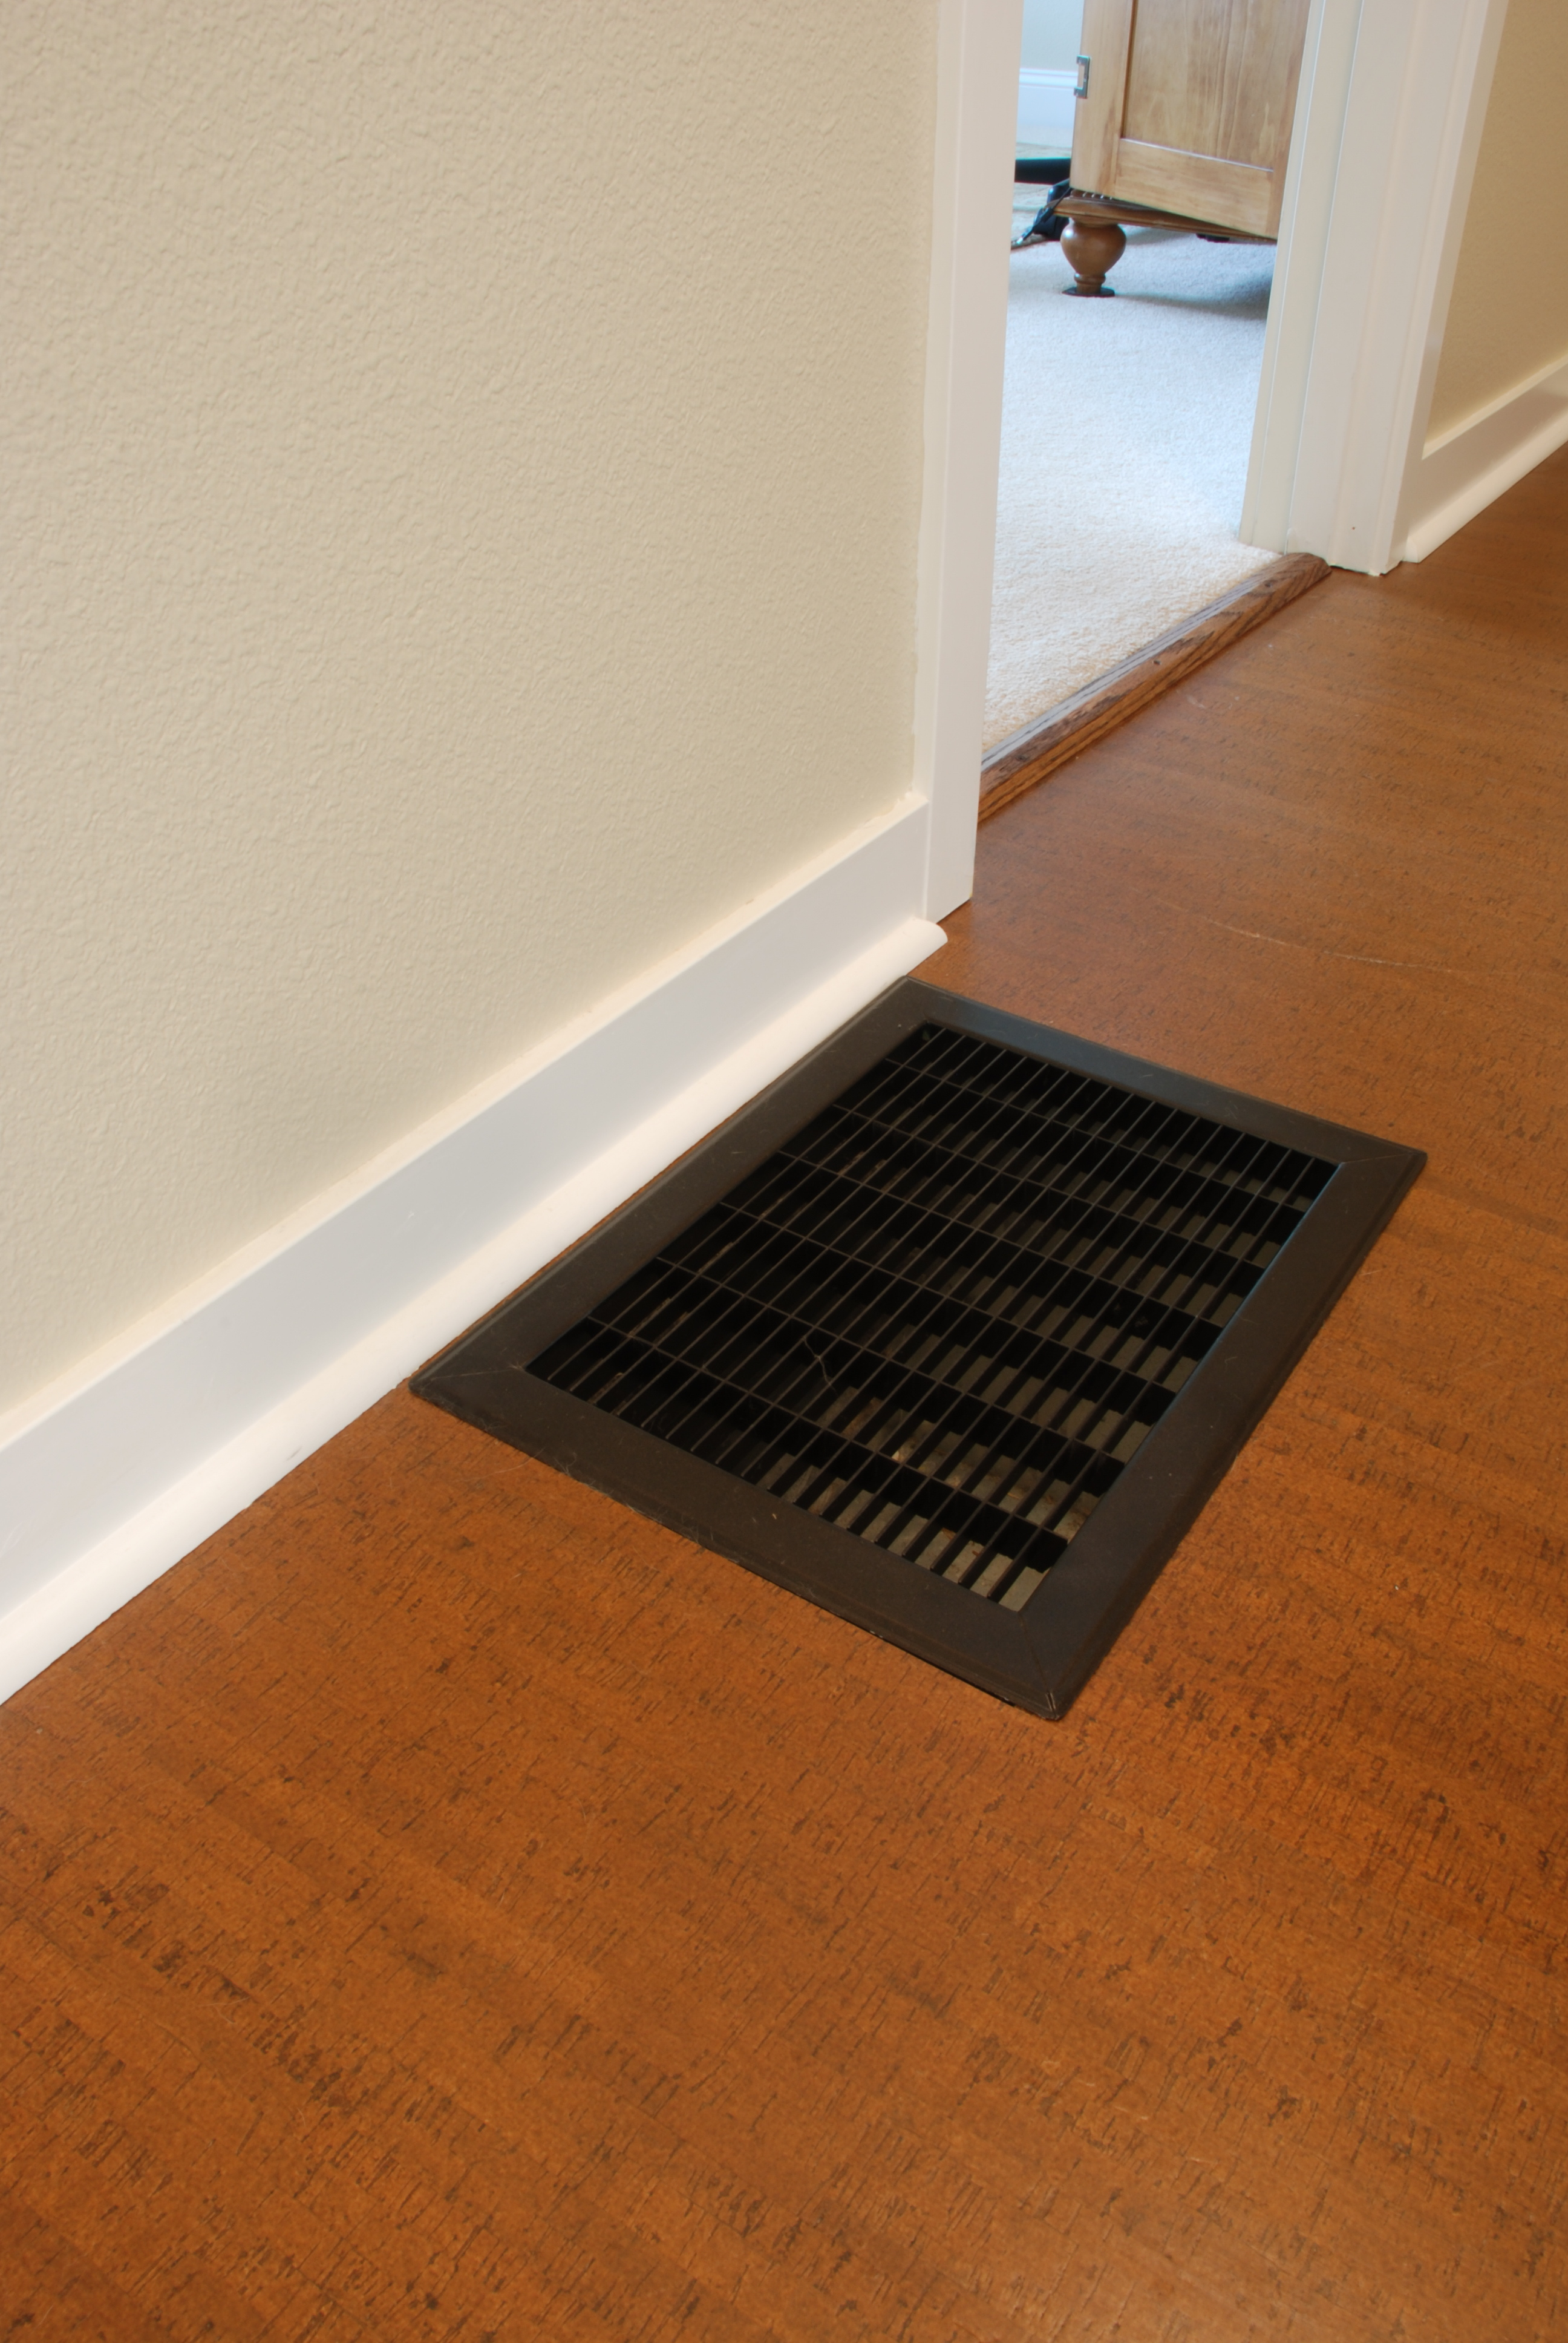 How to cut base molding around wall vent -  And What About Those Shoe Moldings